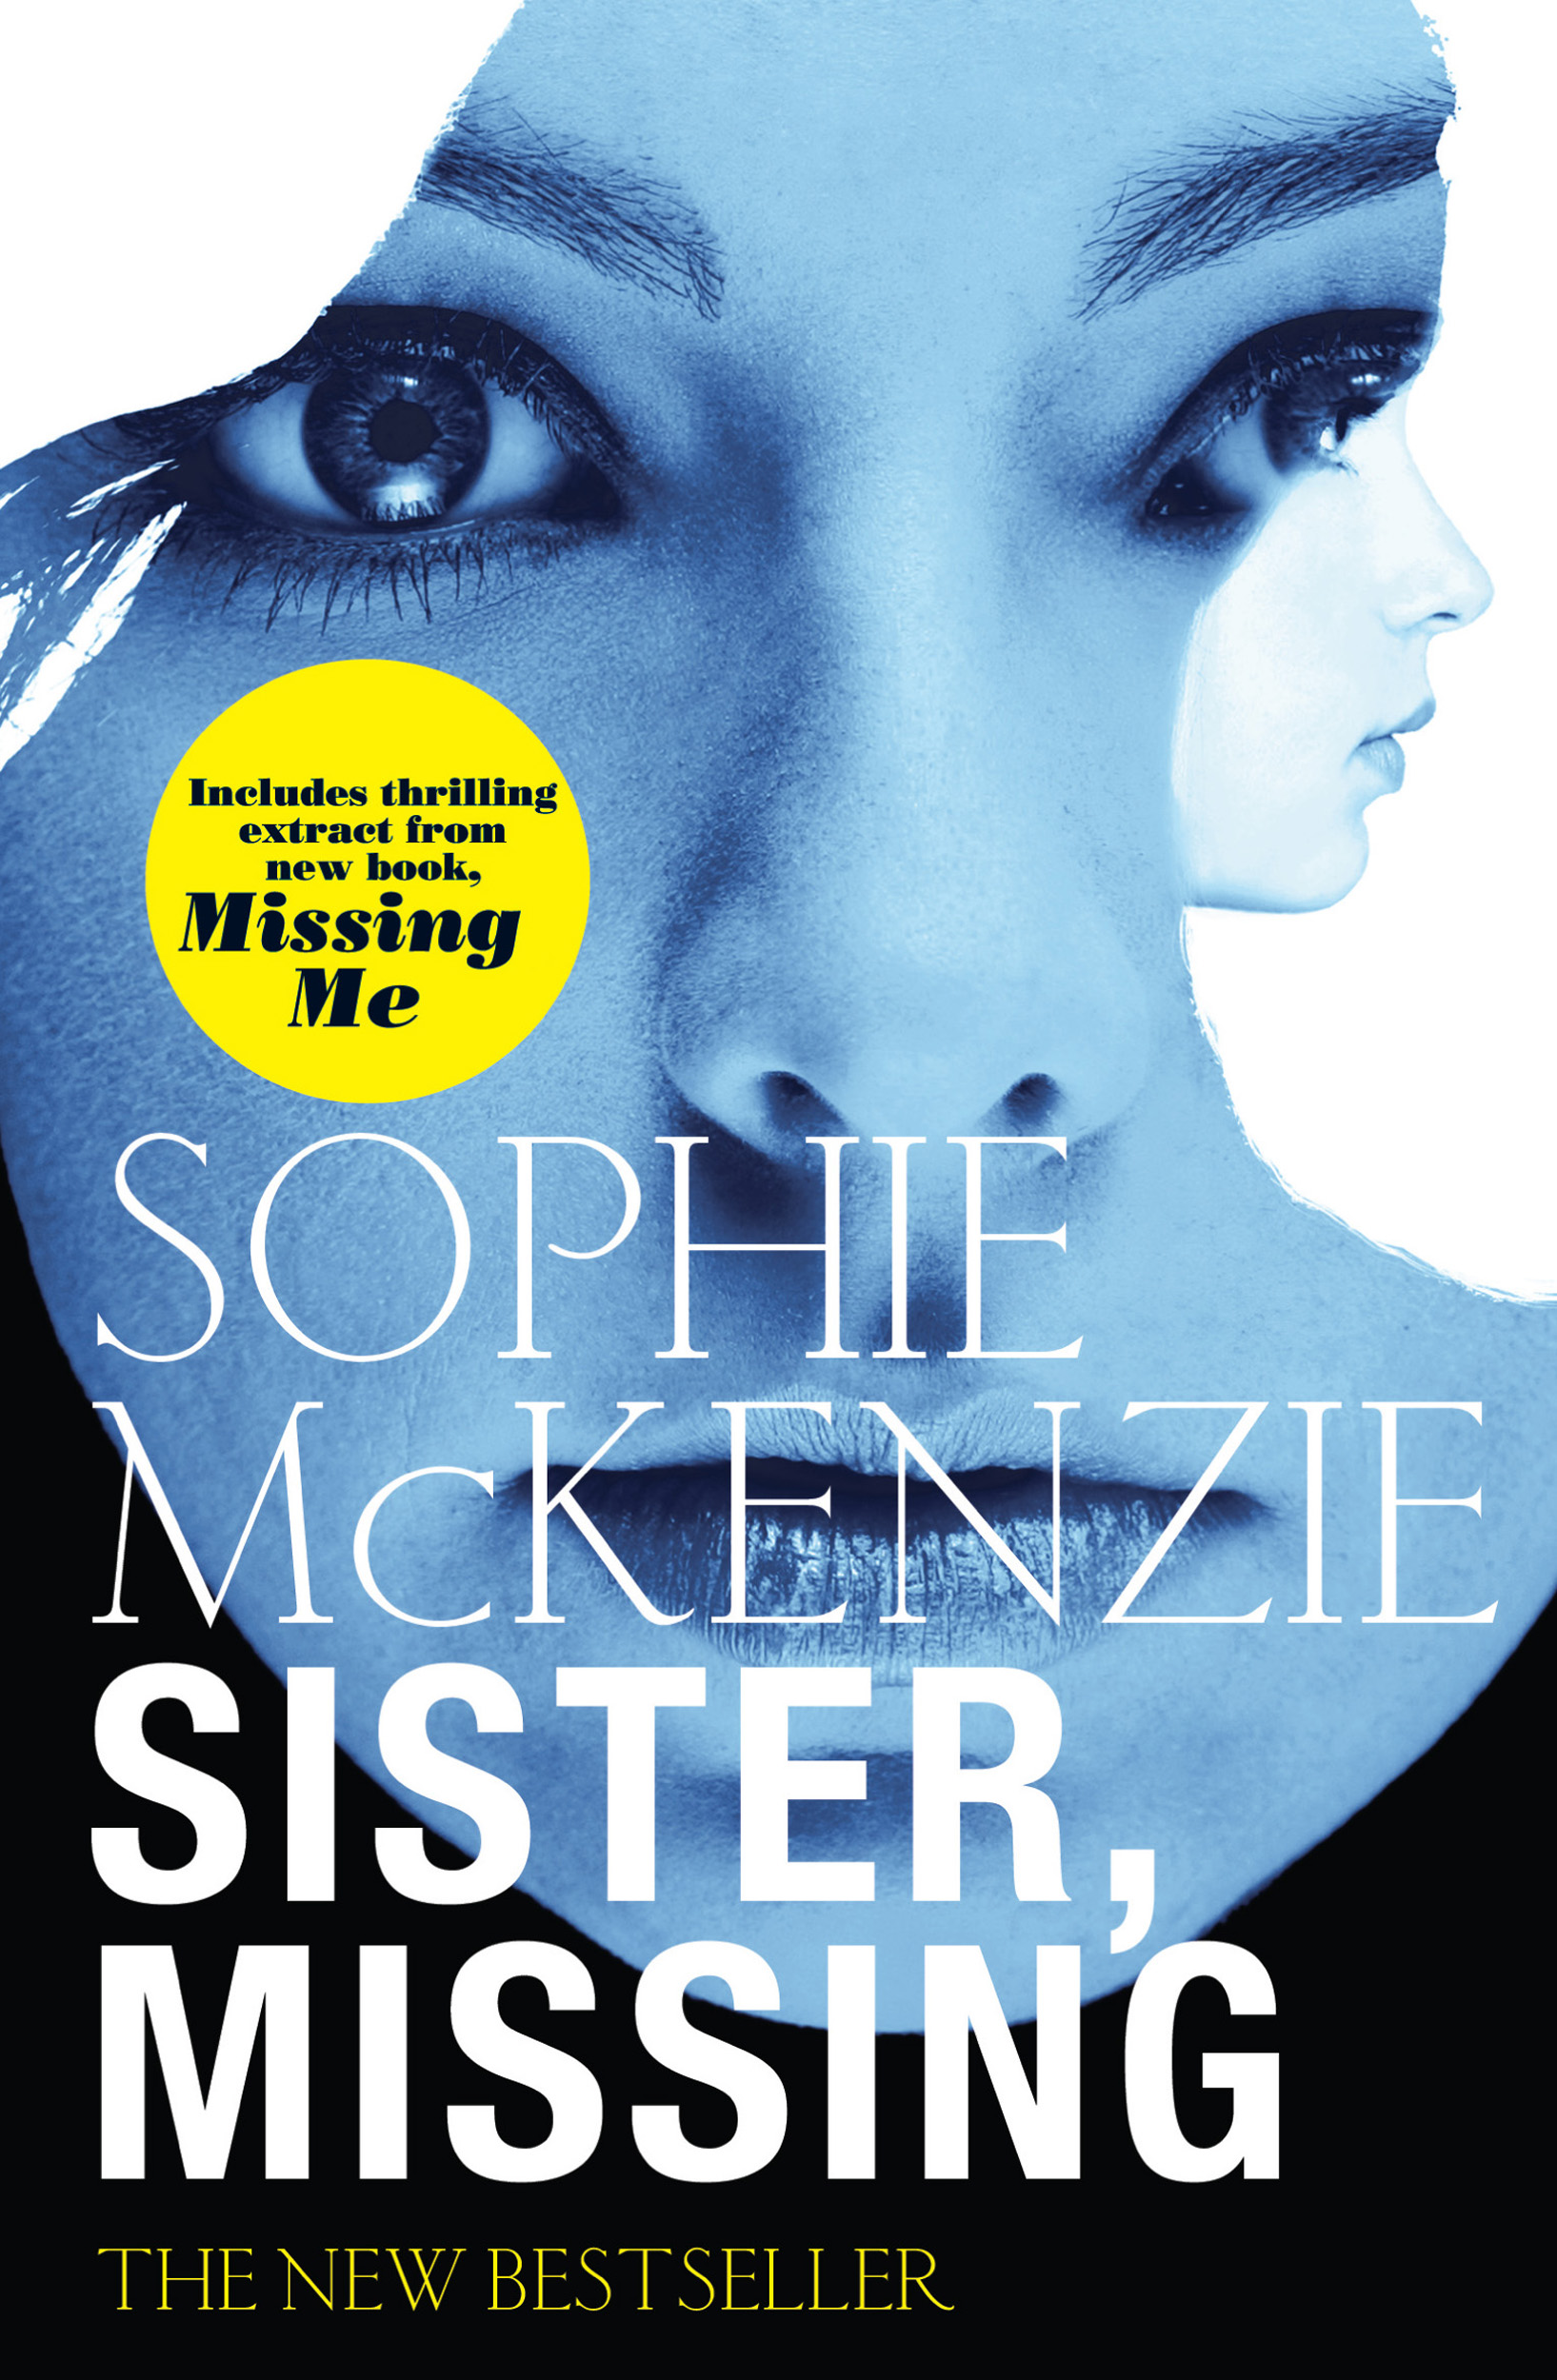 Sister missing book by sophie mckenzie official publisher page cvr9780857072894 9780857072894 hr fandeluxe Image collections